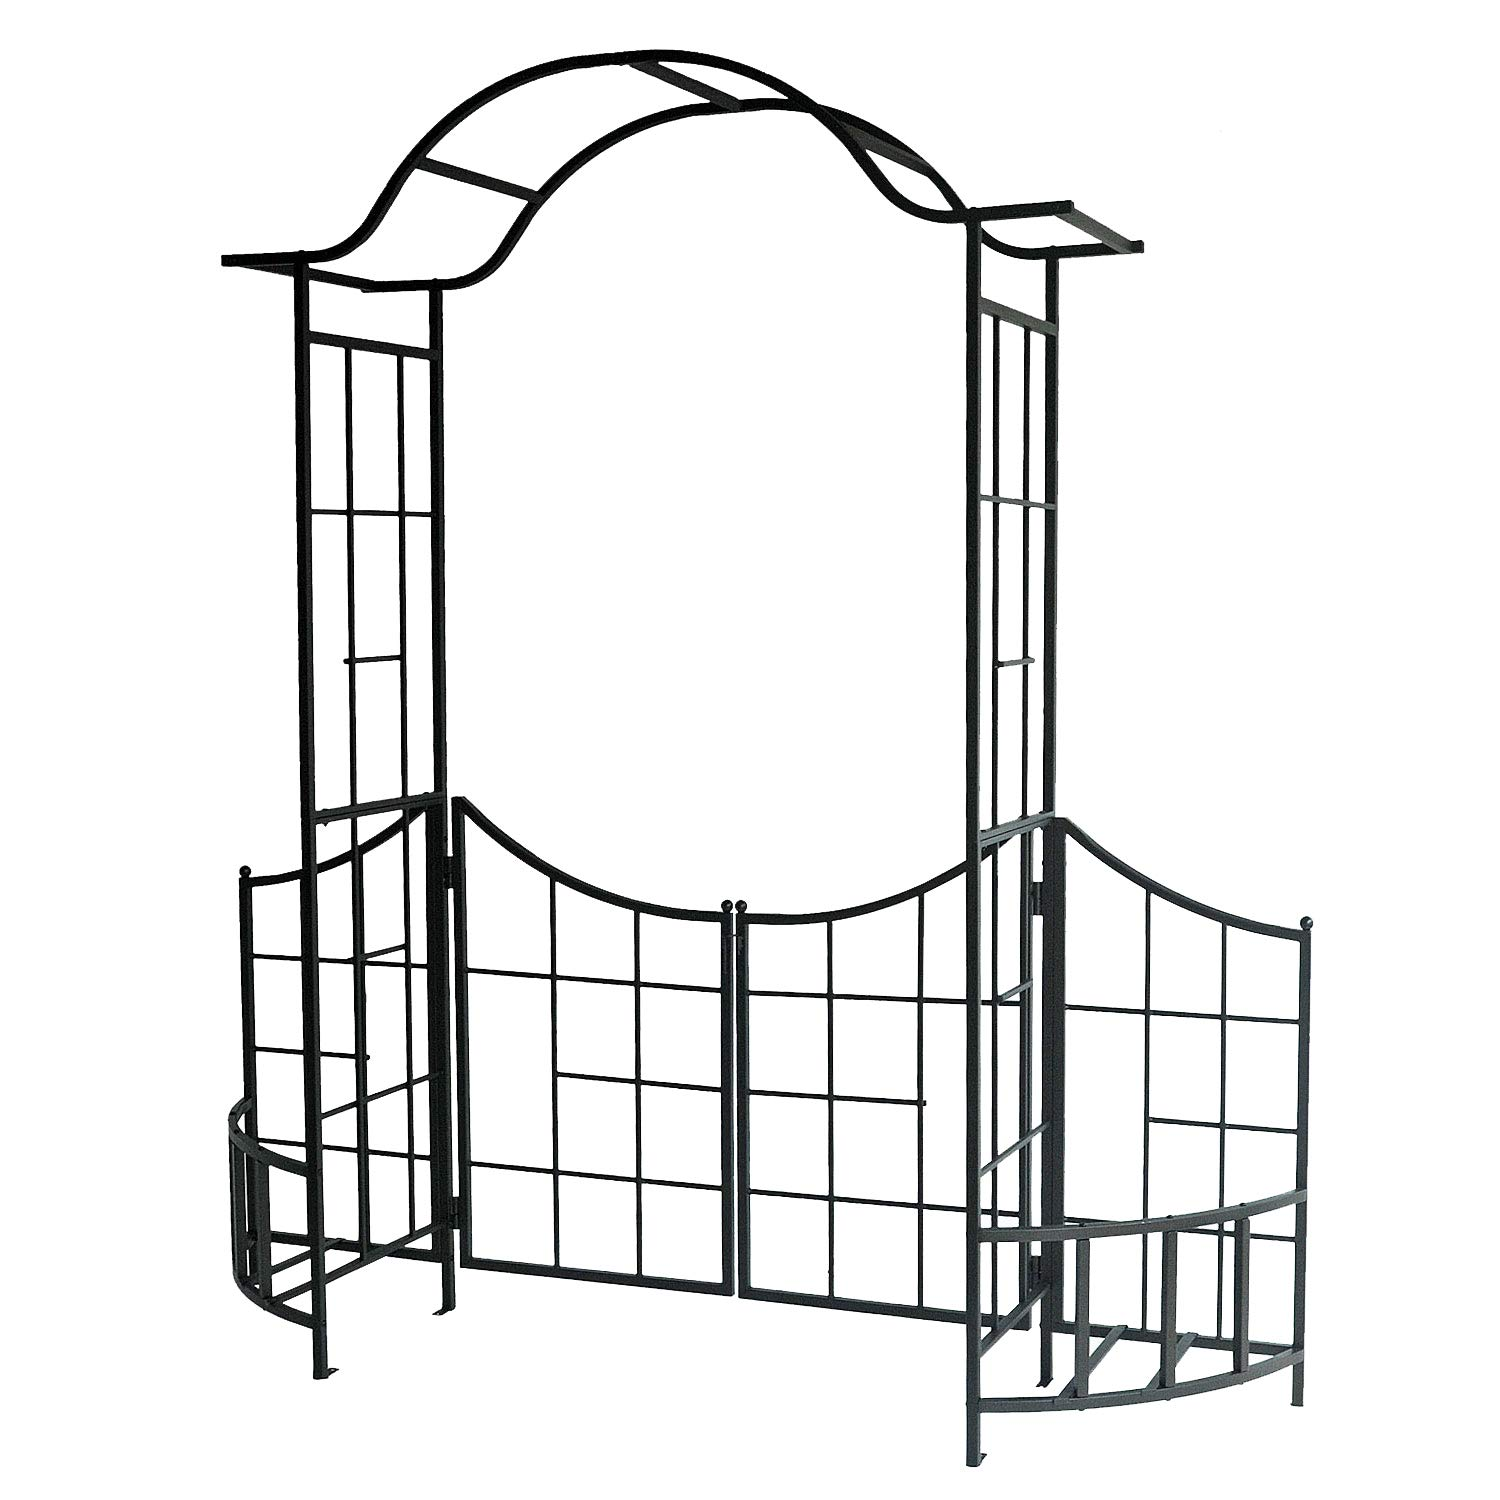 Leisurelife Garden Arbor with Gate, Fence and Planter Holders